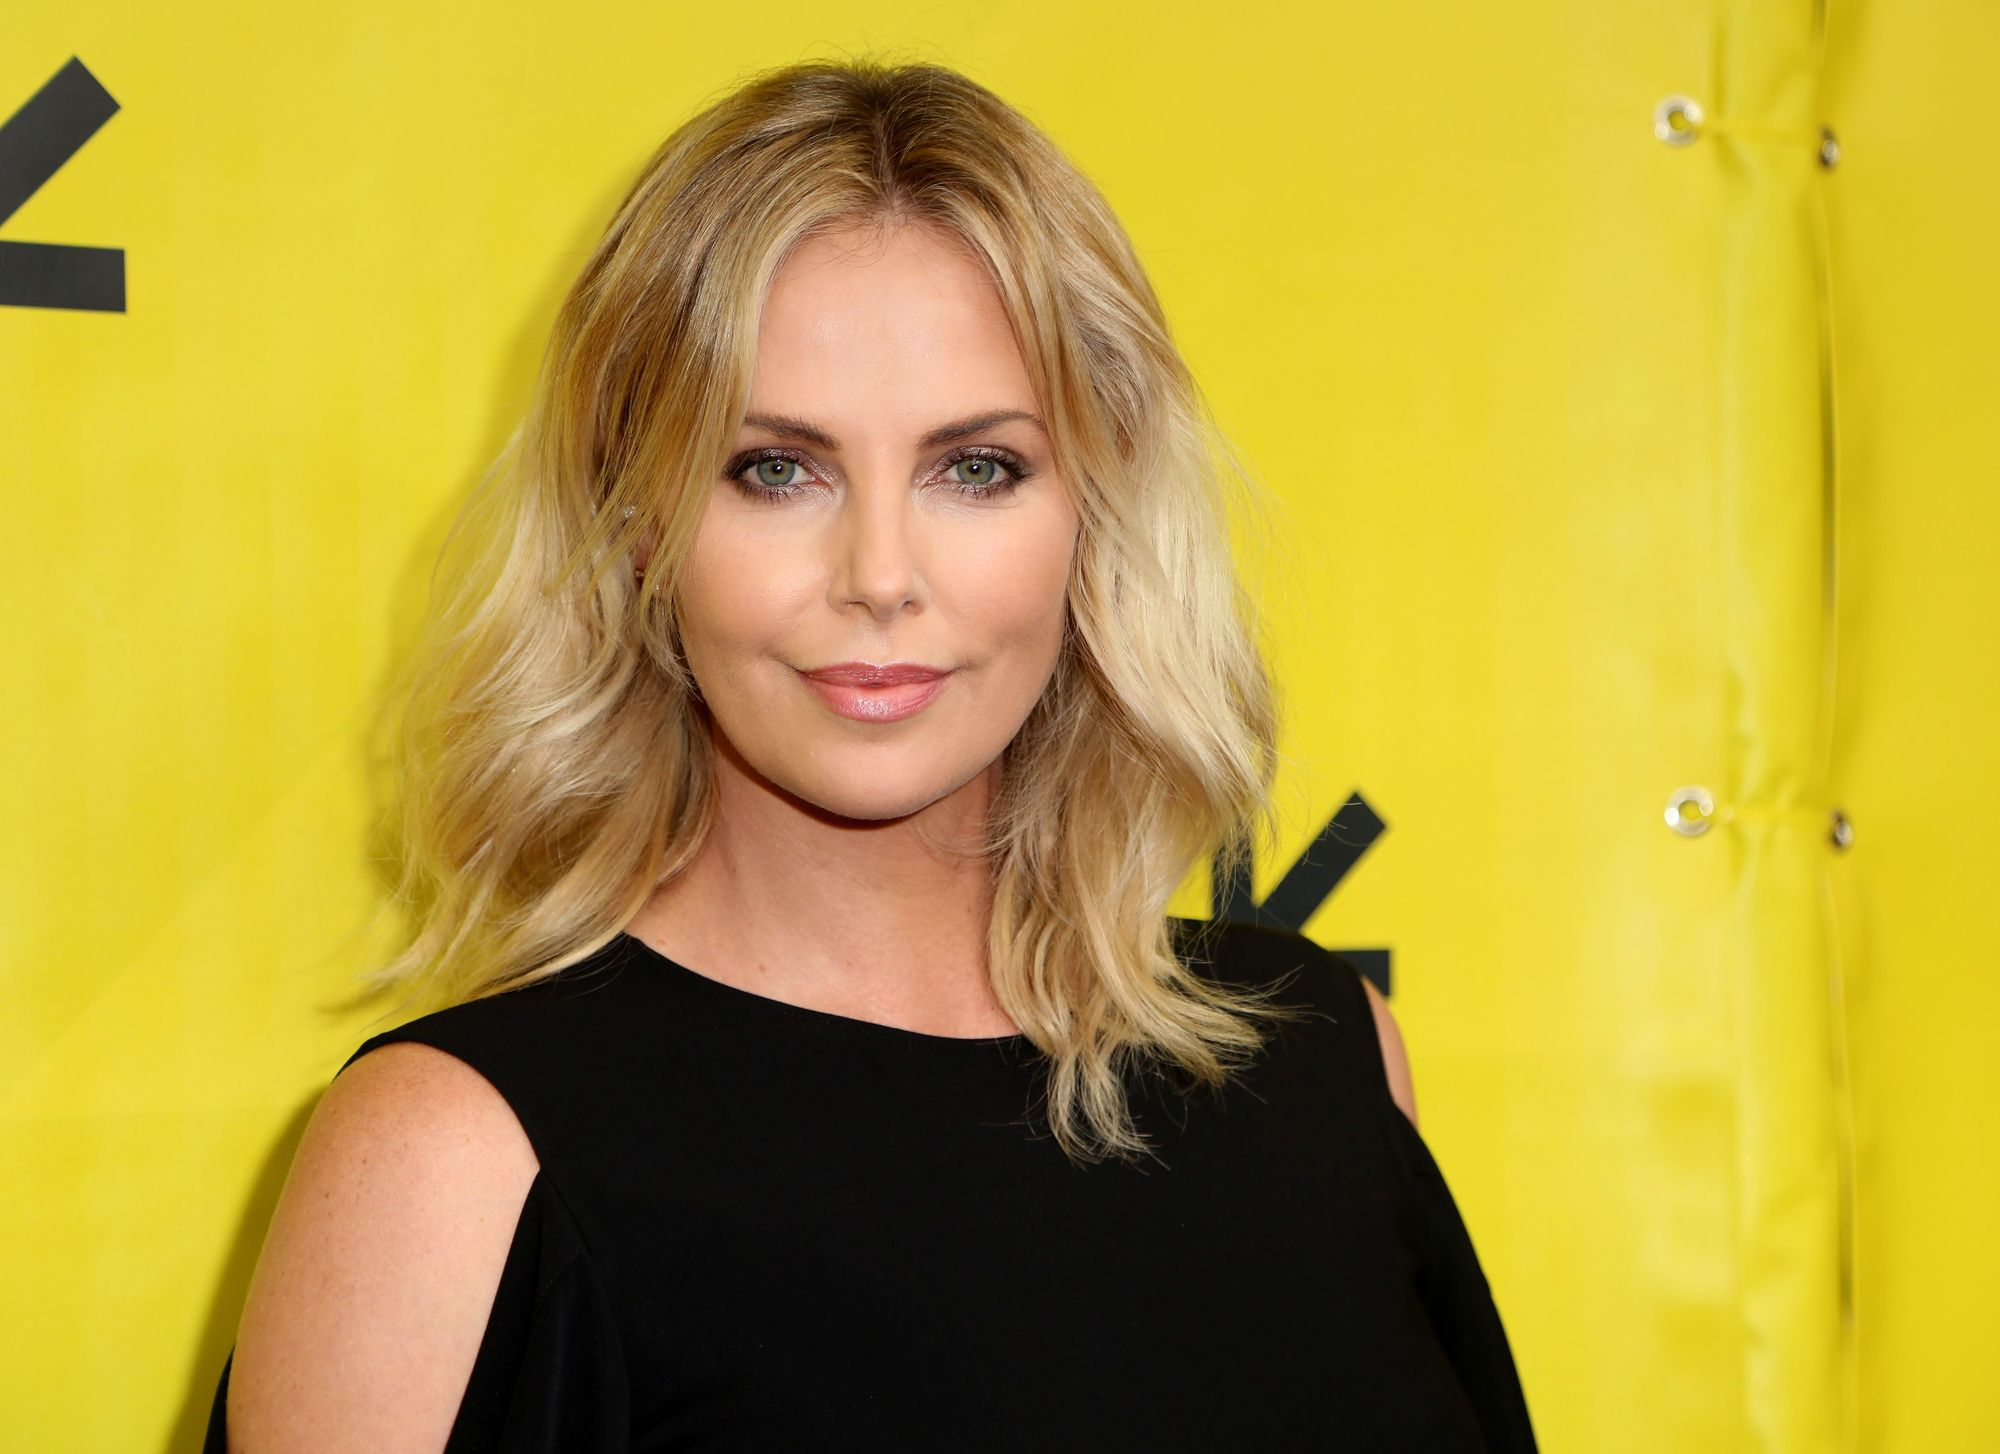 hairstyles for fine curly hair: charlize theron with shoulder length voluminous blonde curls with a centre parting